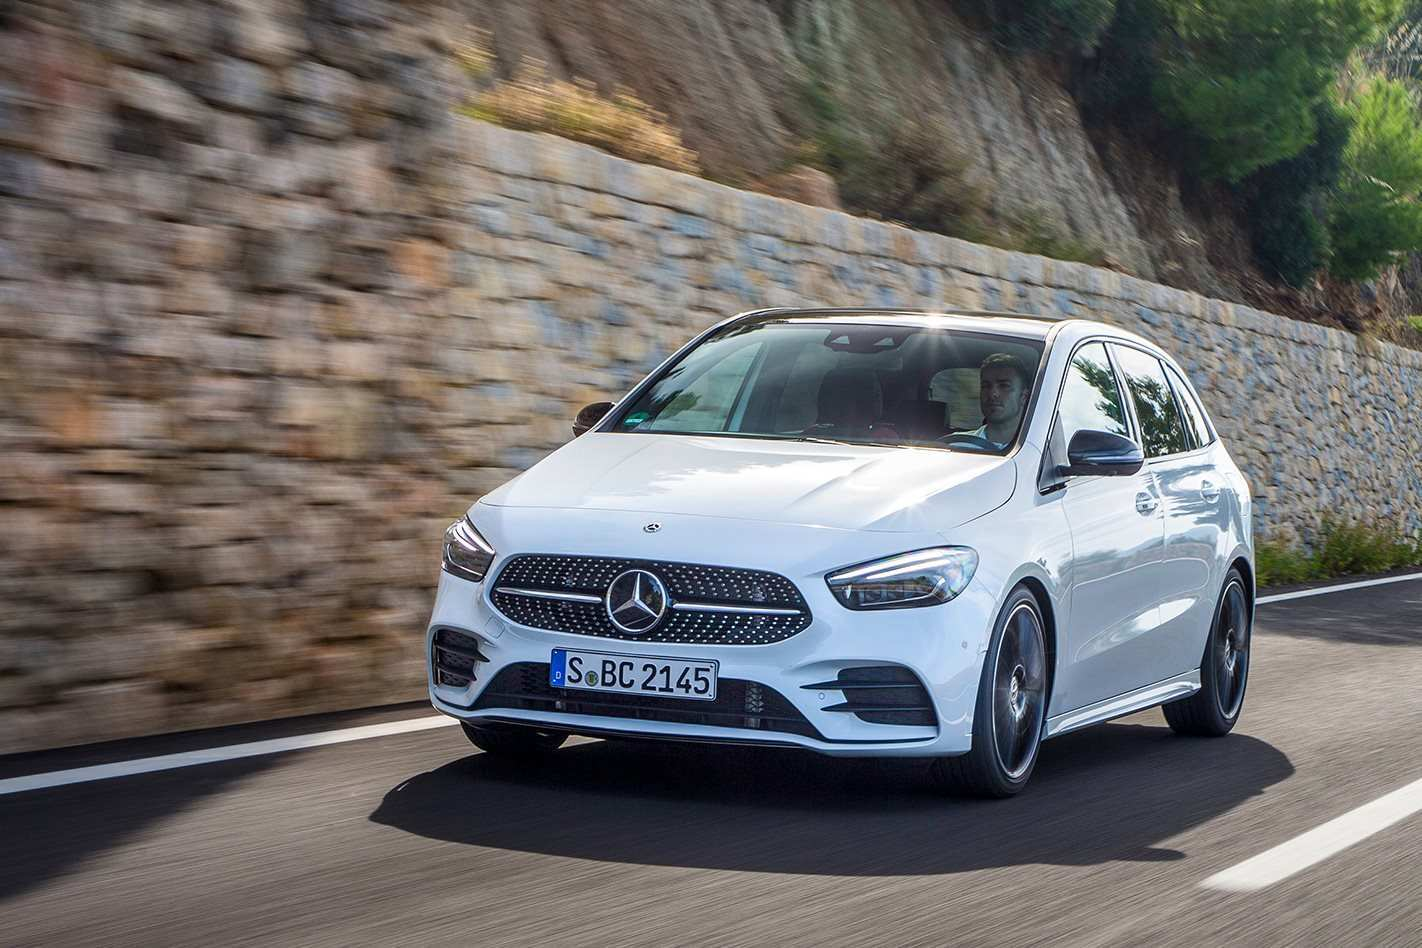 15 Concept of Best Mercedes Benz B Klasse 2019 Interior Exterior And Review Reviews with Best Mercedes Benz B Klasse 2019 Interior Exterior And Review